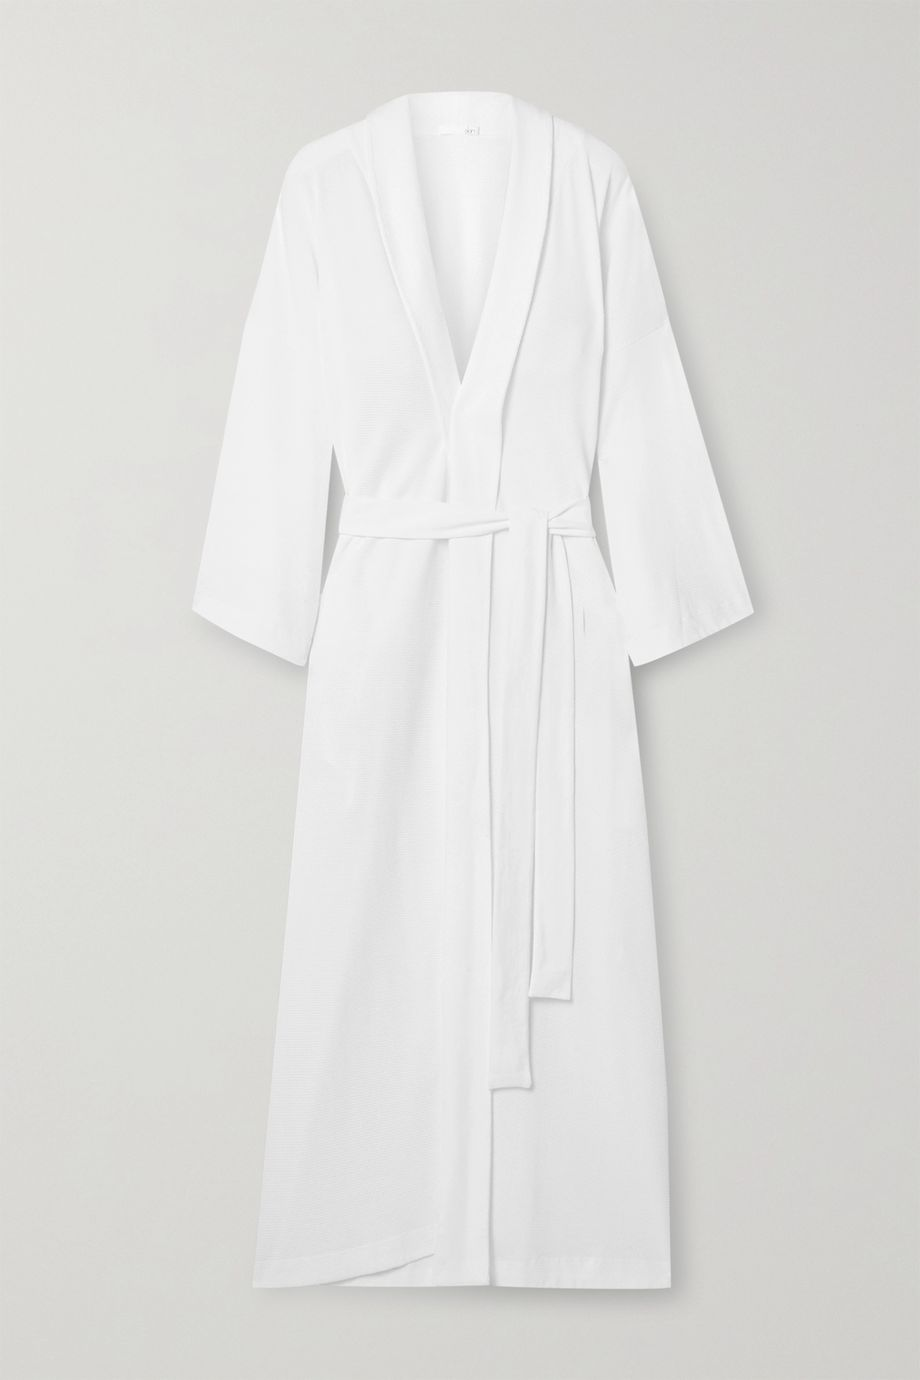 Skin Lydia textured Pima cotton robe